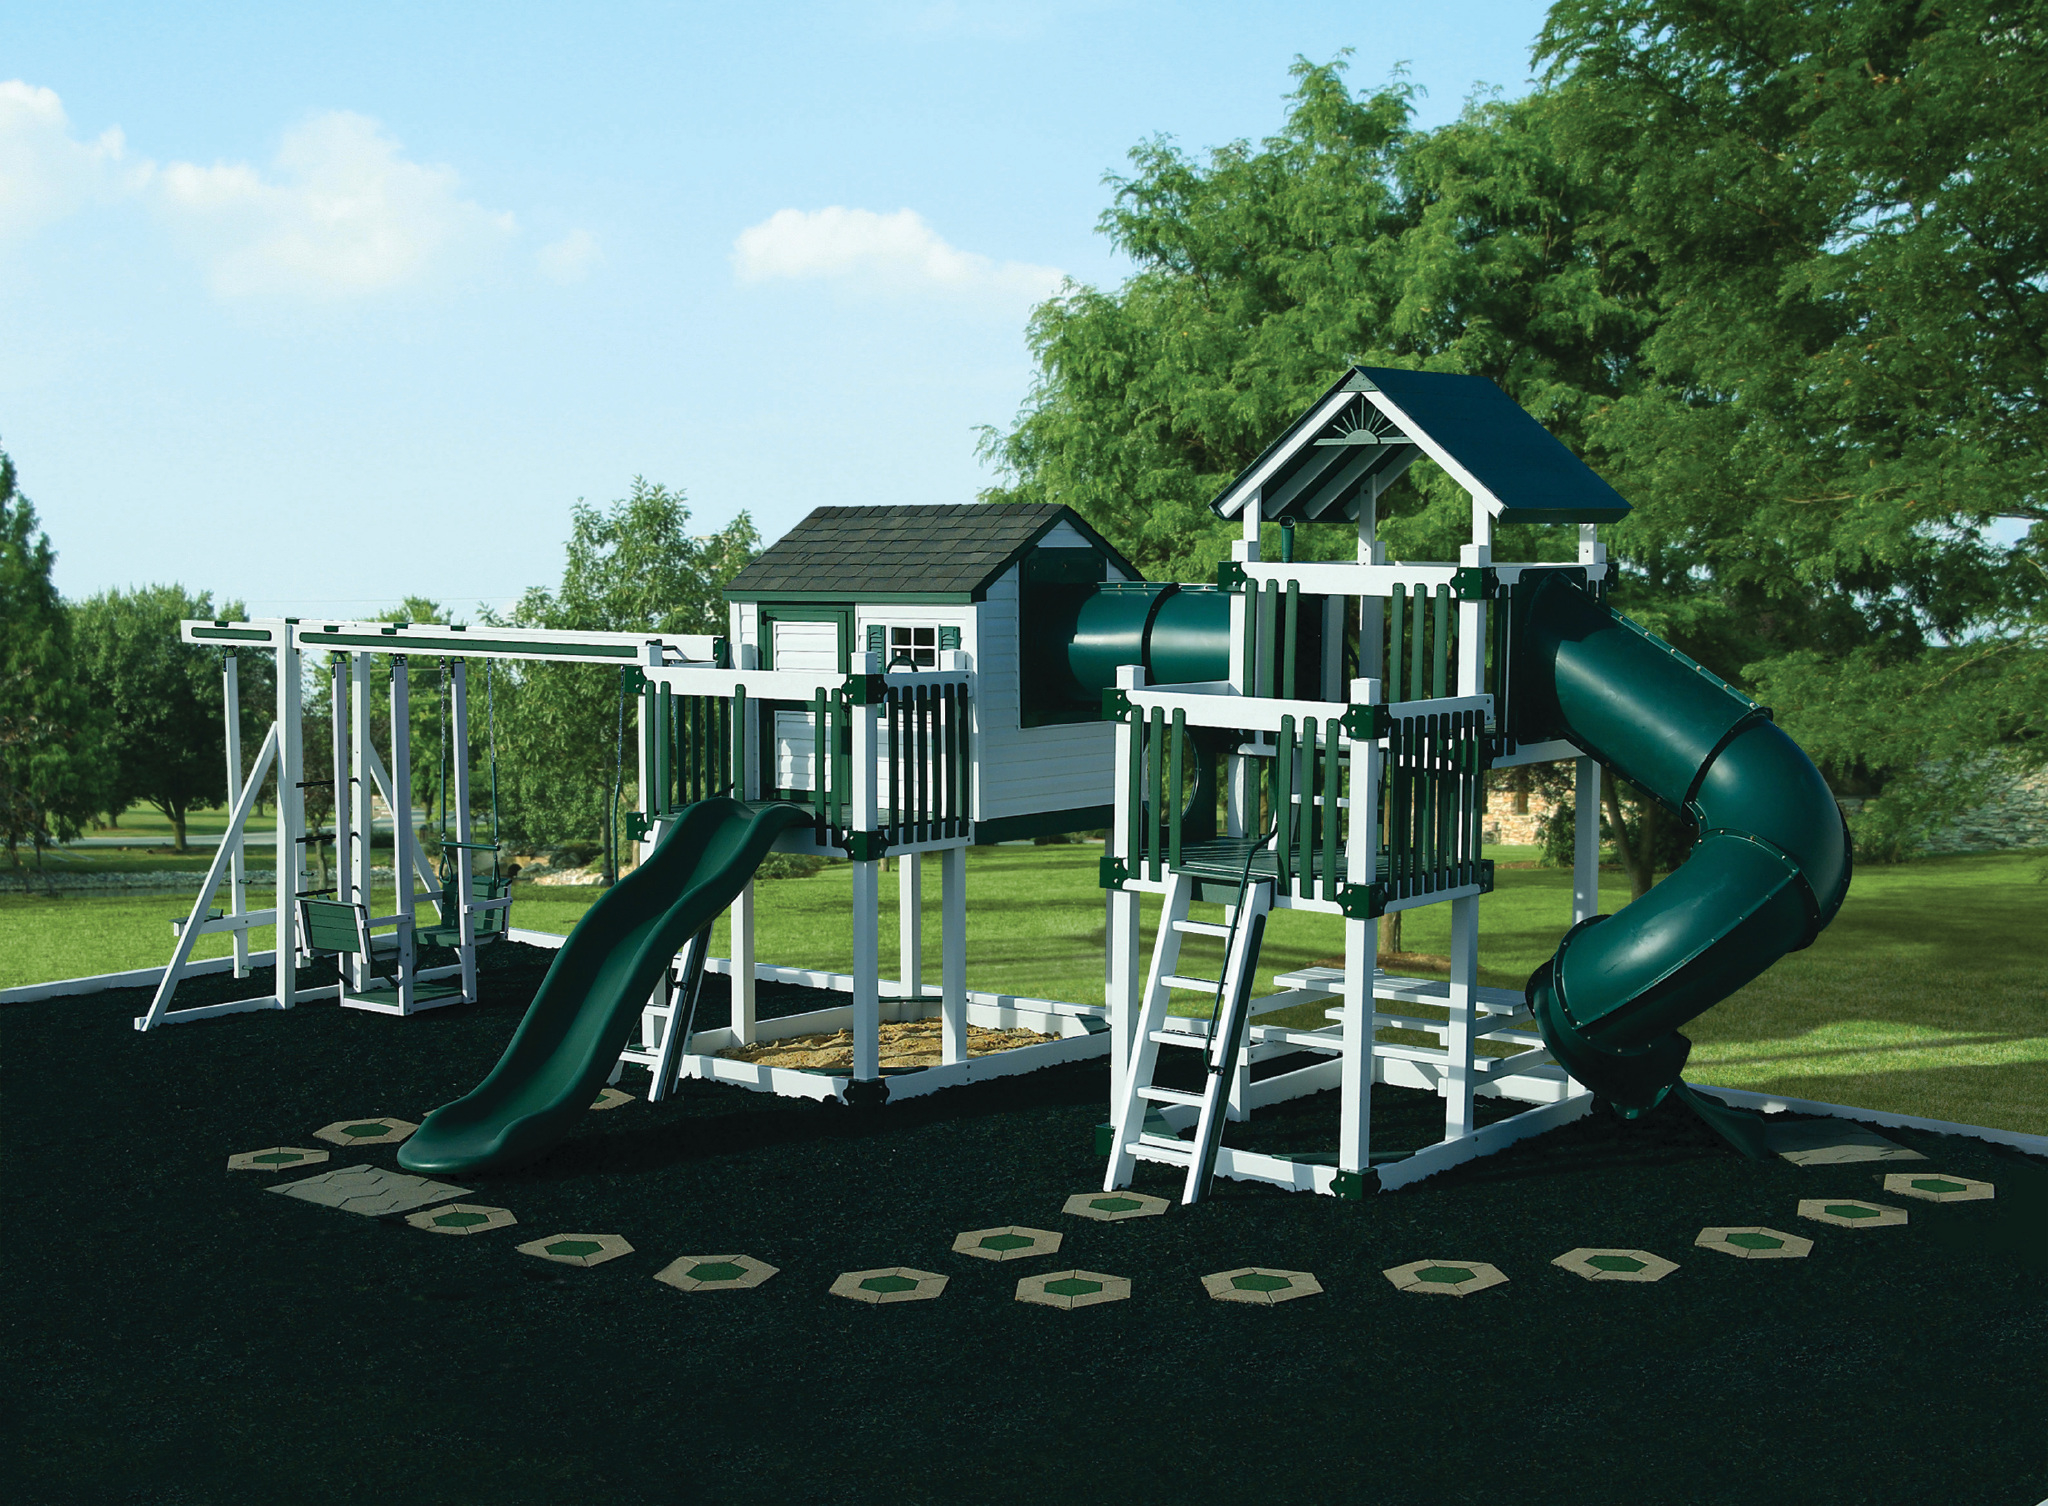 Outdoor Living and Play image 6